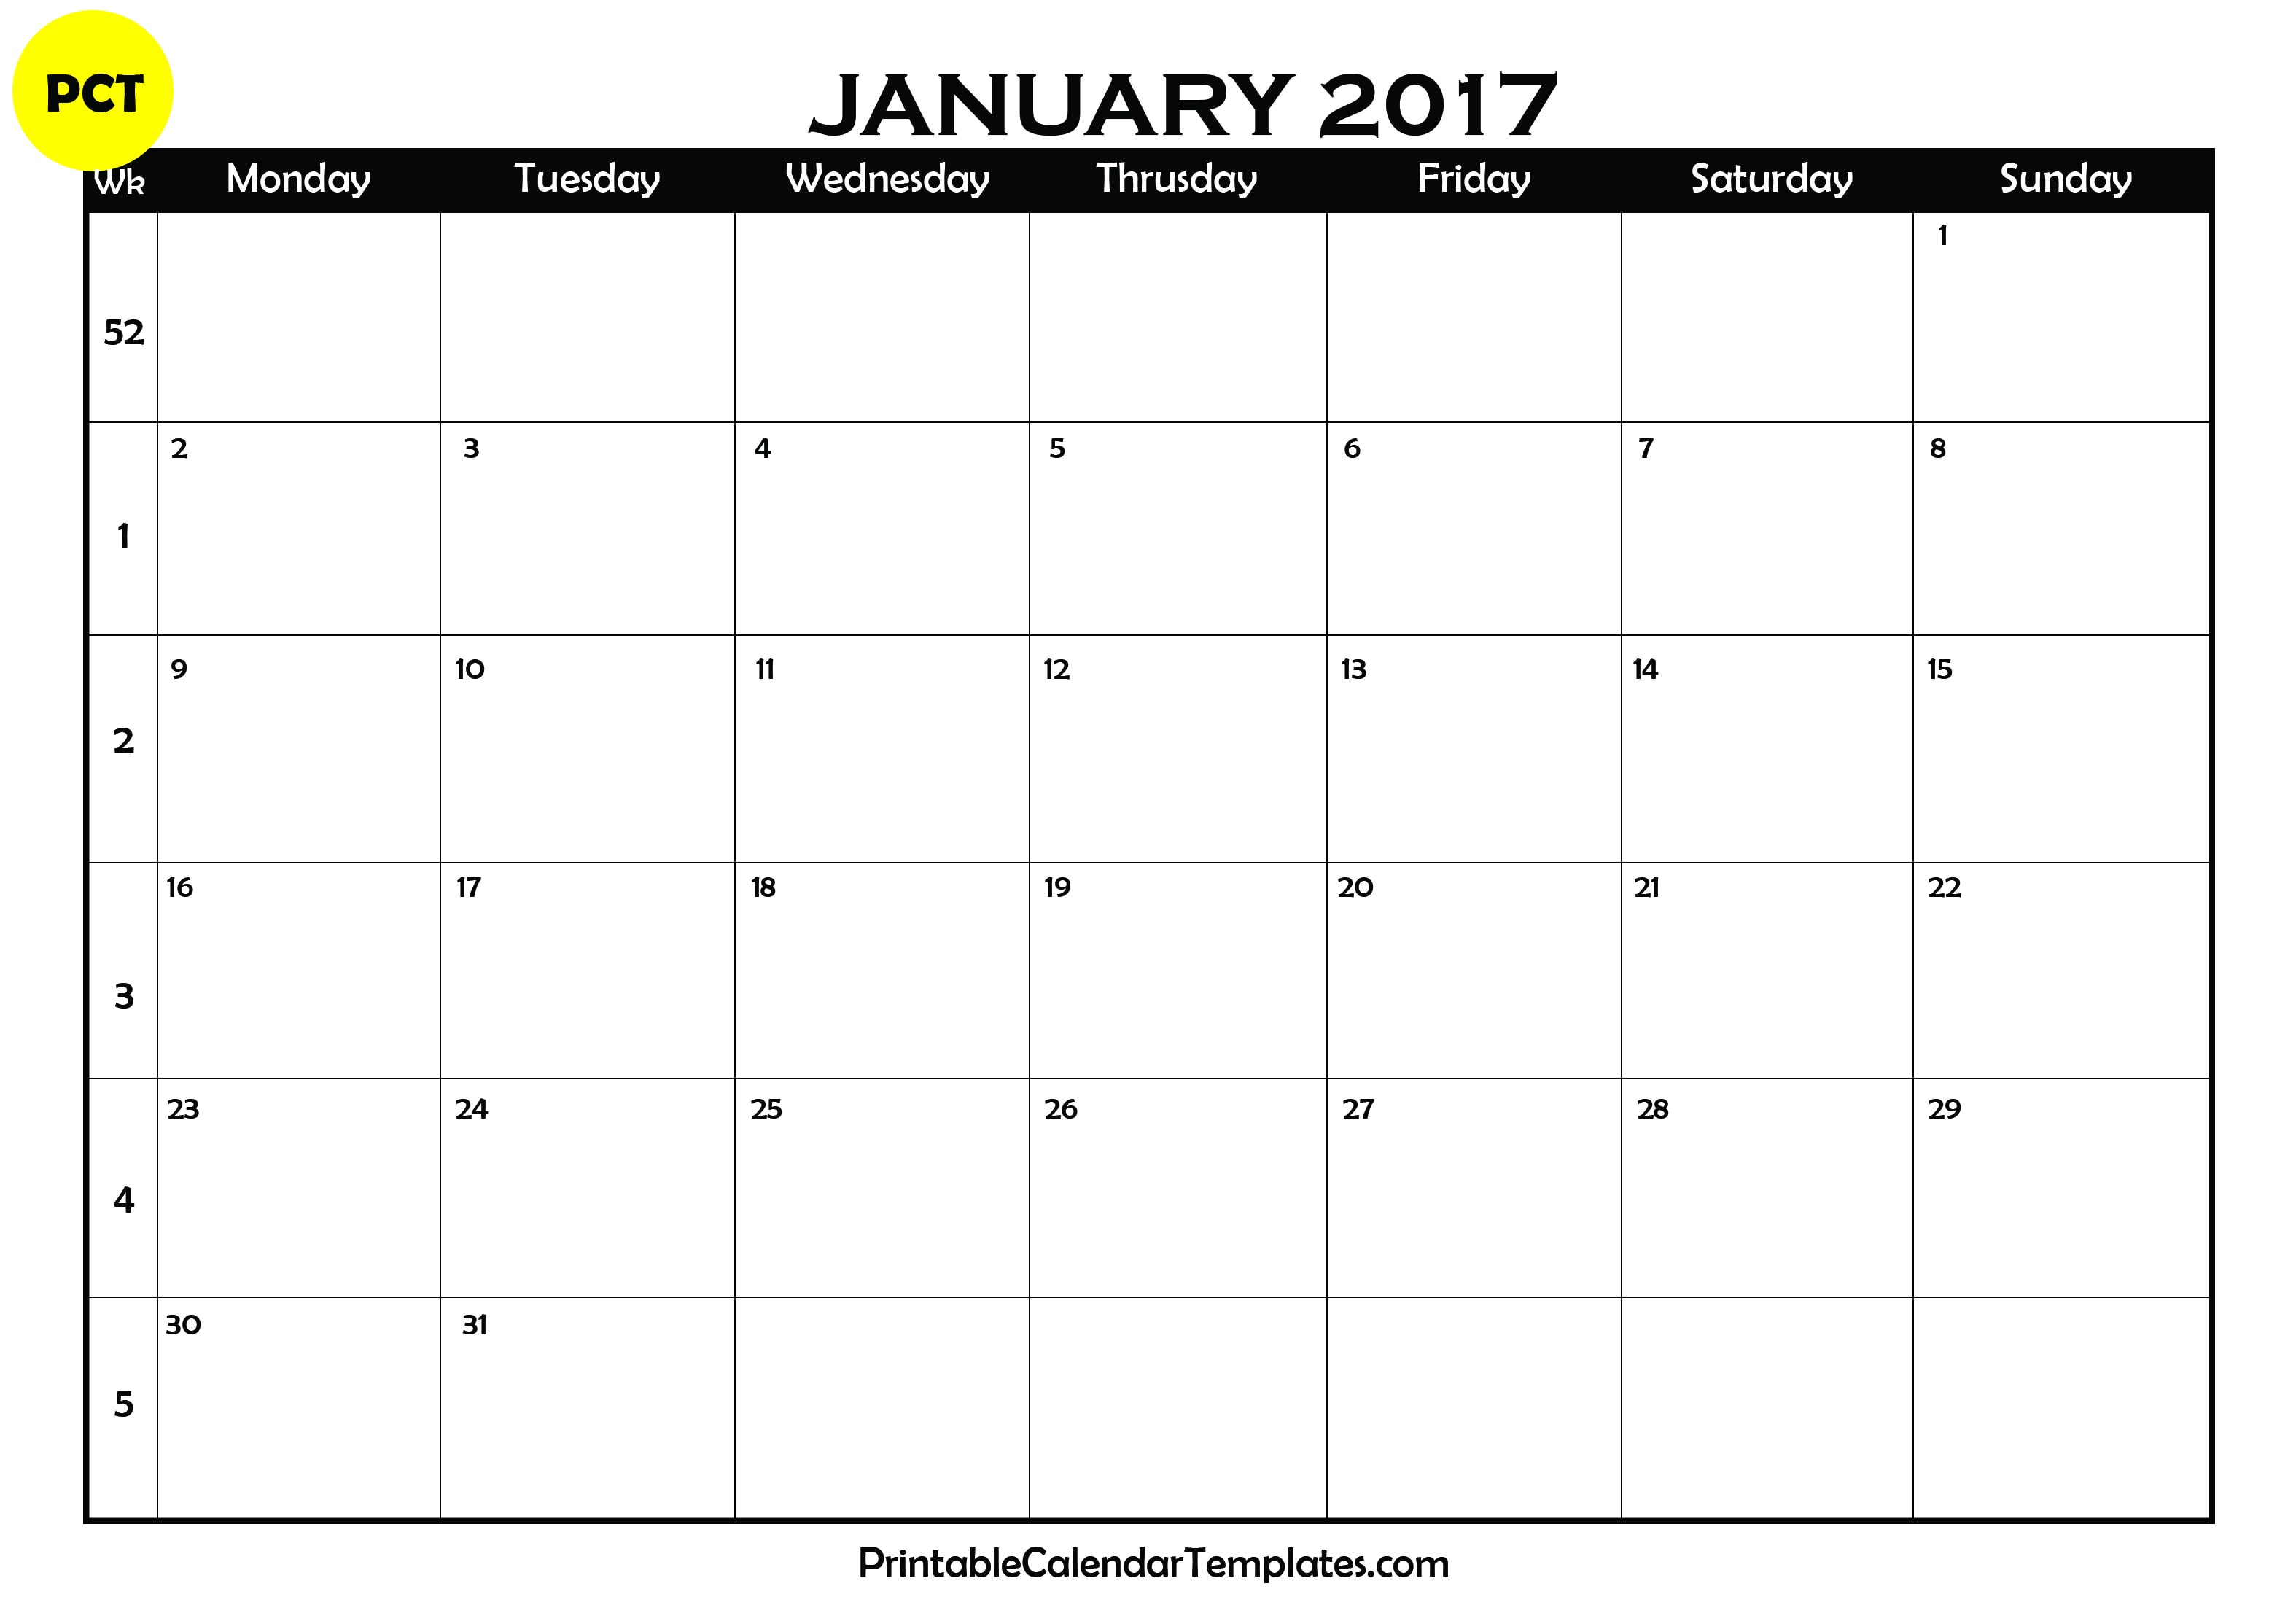 january 2017 calendar, free january printable calendar, january 2017 calendar template